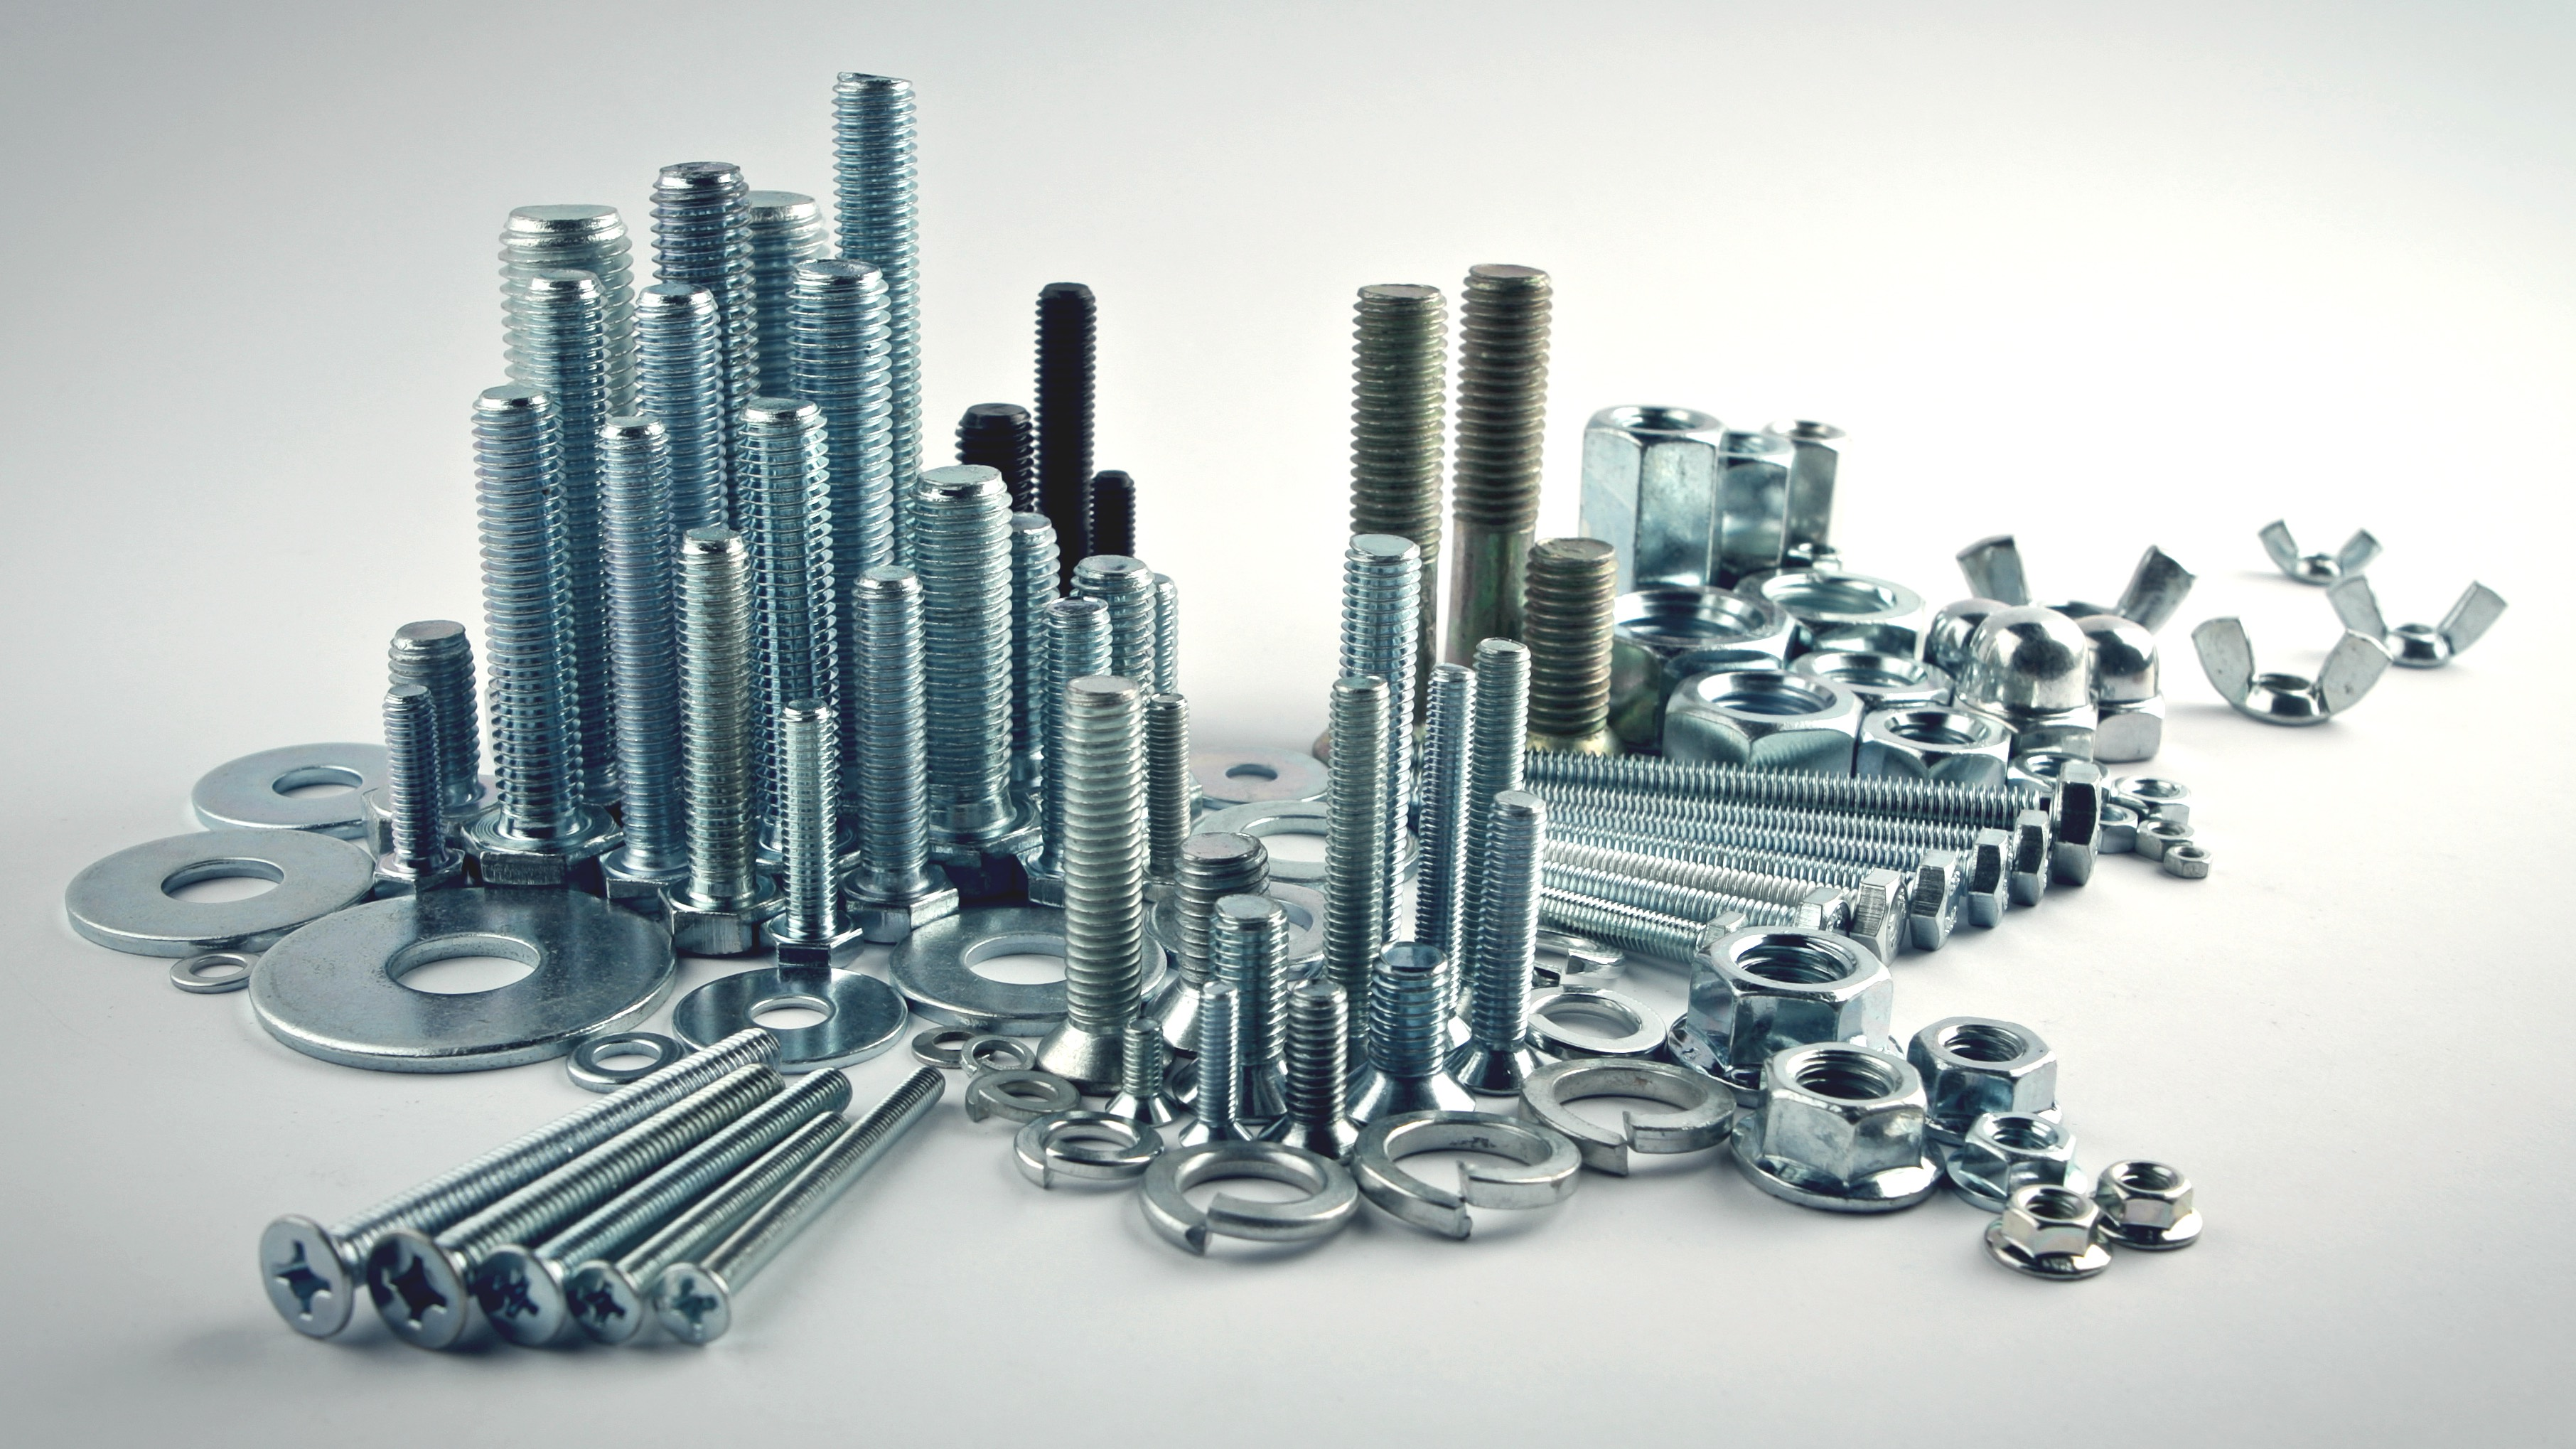 Fasteners - Custom Manufacturing Hardware from Tengco, Inc.